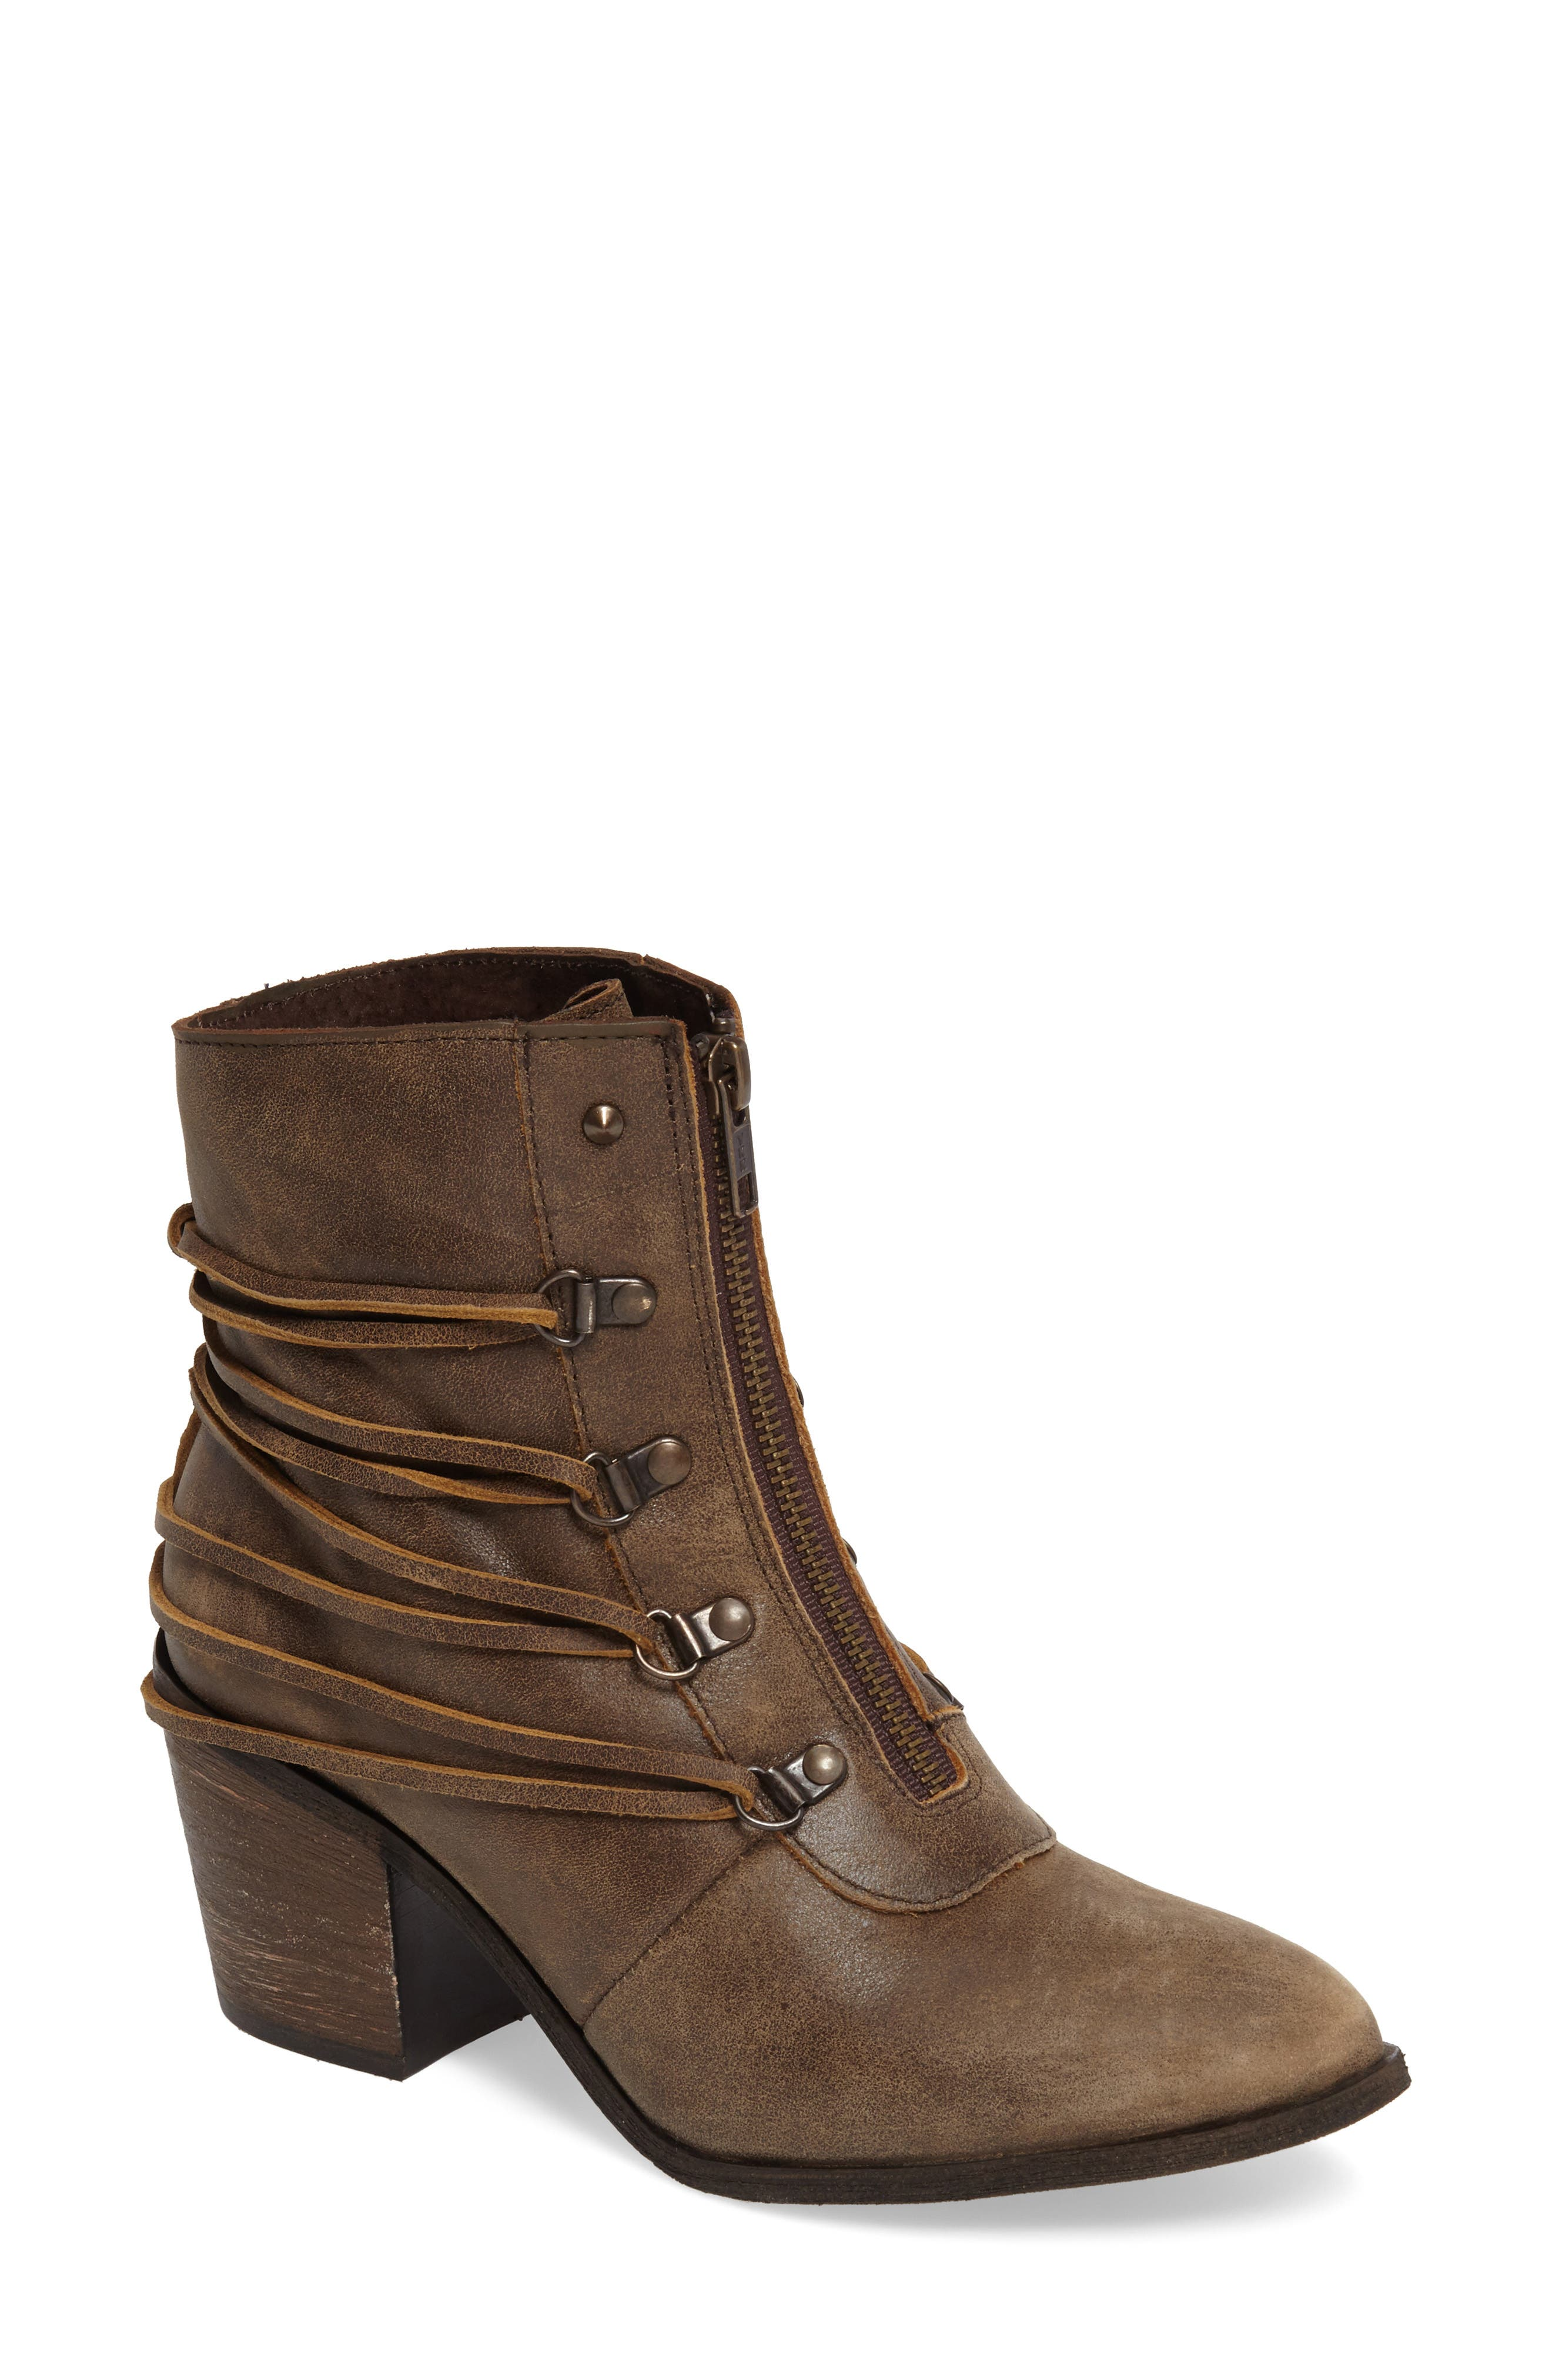 Sbicca Peacekeeper Lace-Up Bootie (Women)